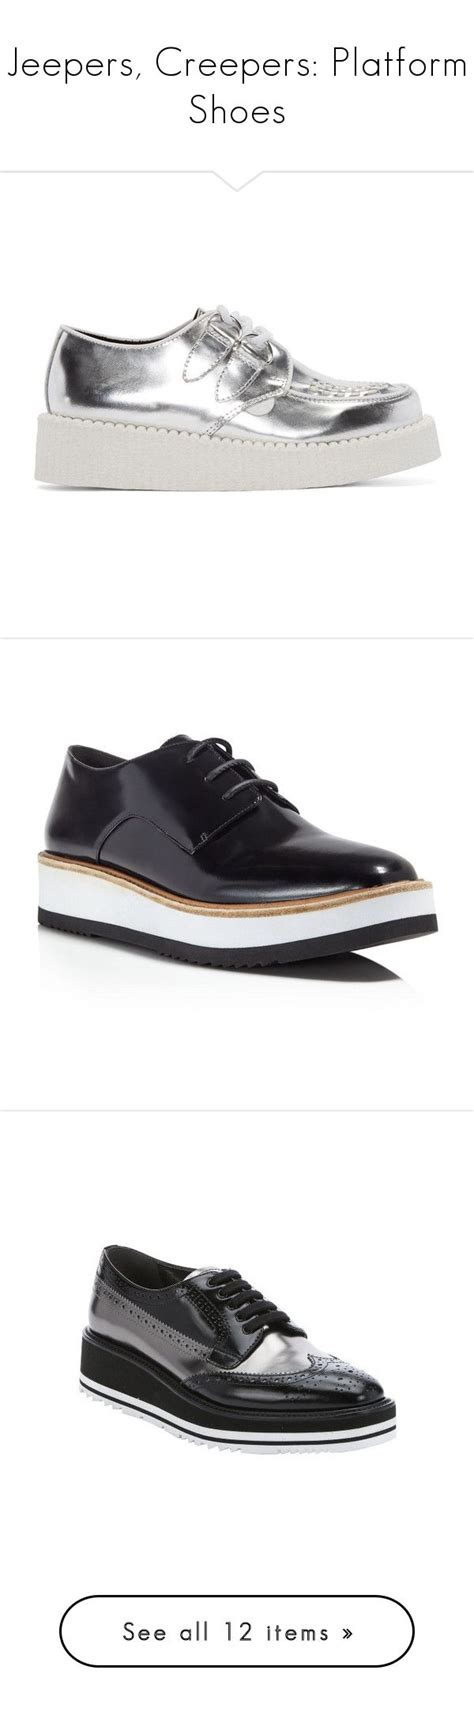 jeepers creepers sneakers quot jeepers creepers platform shoes quot by polyvore editorial